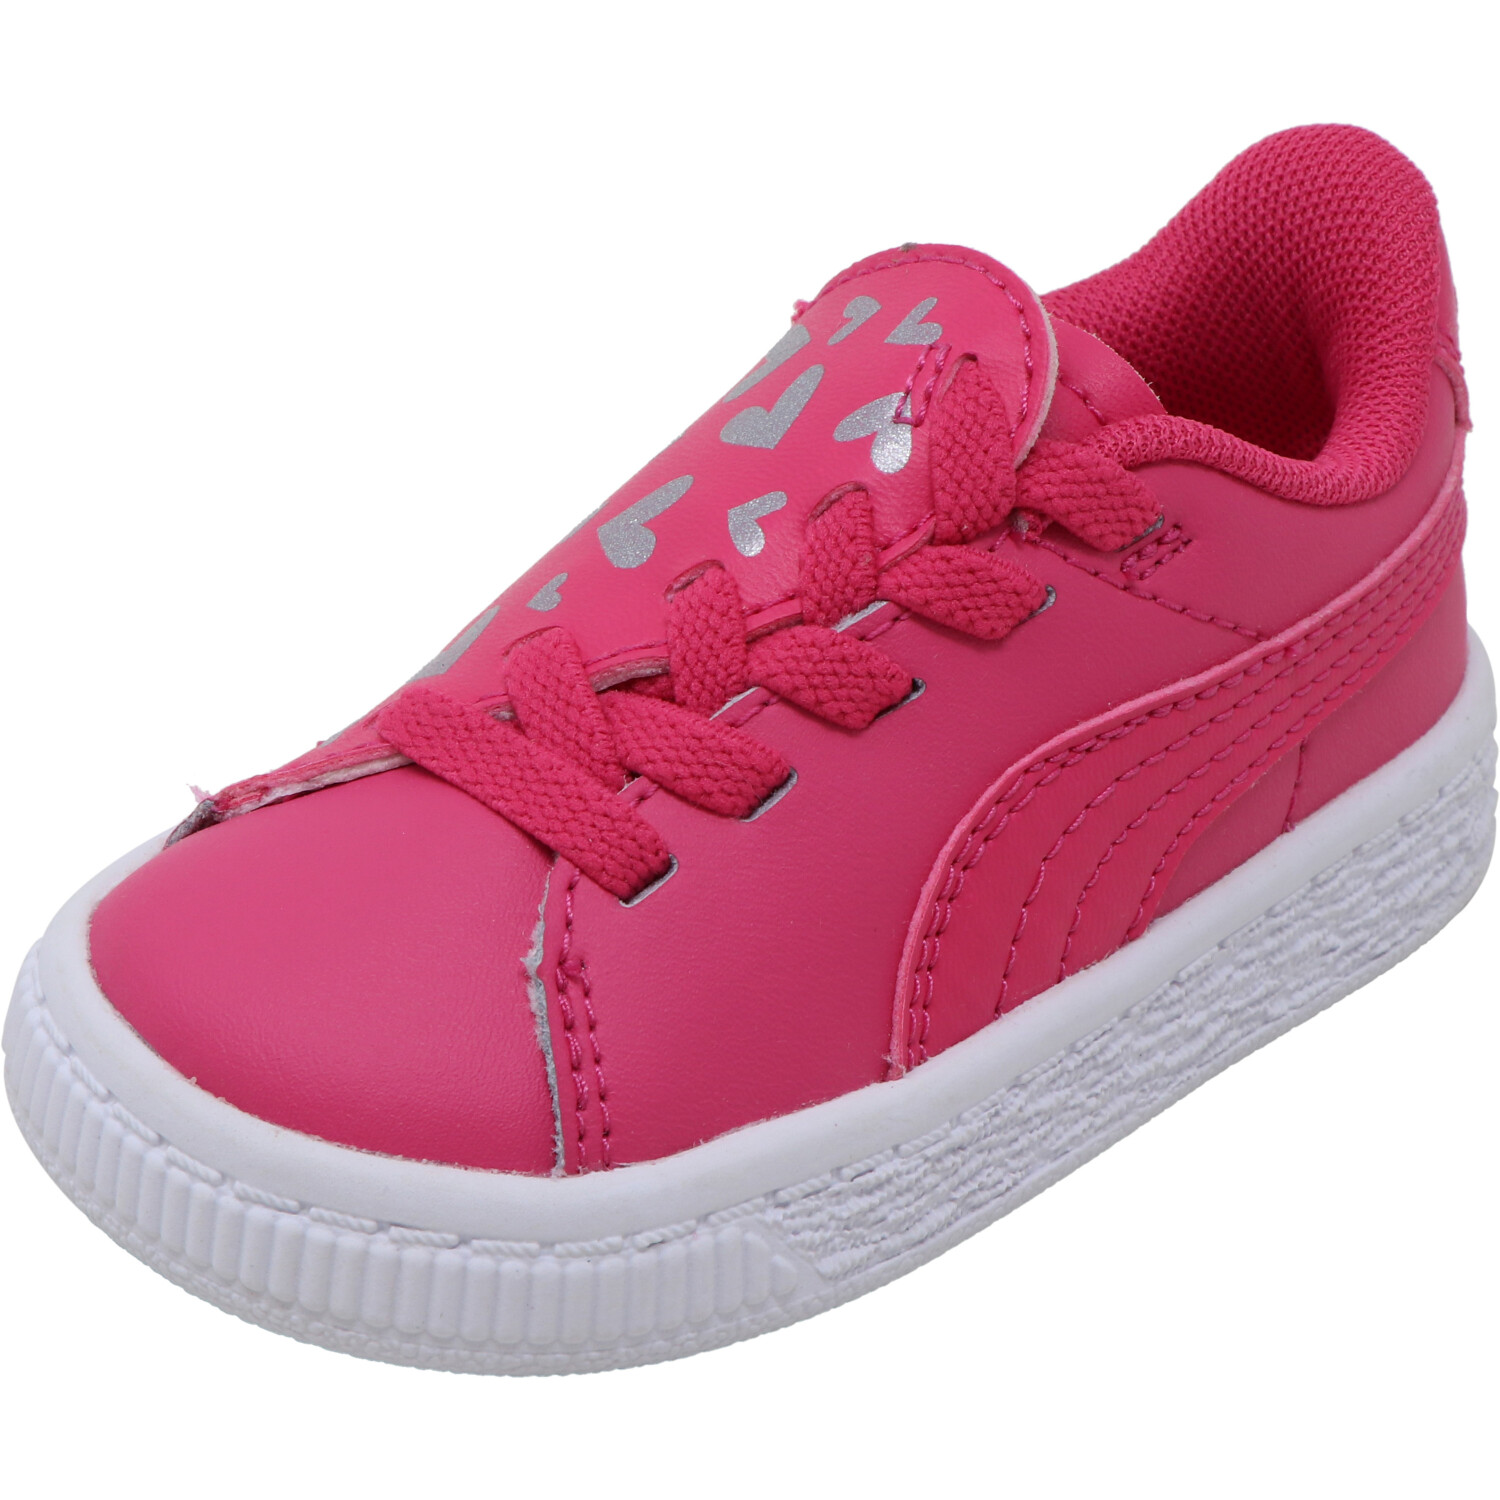 Puma Girl's Basket Crush Glitter Heart Ac Inf Fuchsia Purple / White Ankle-High Sneaker - 4M